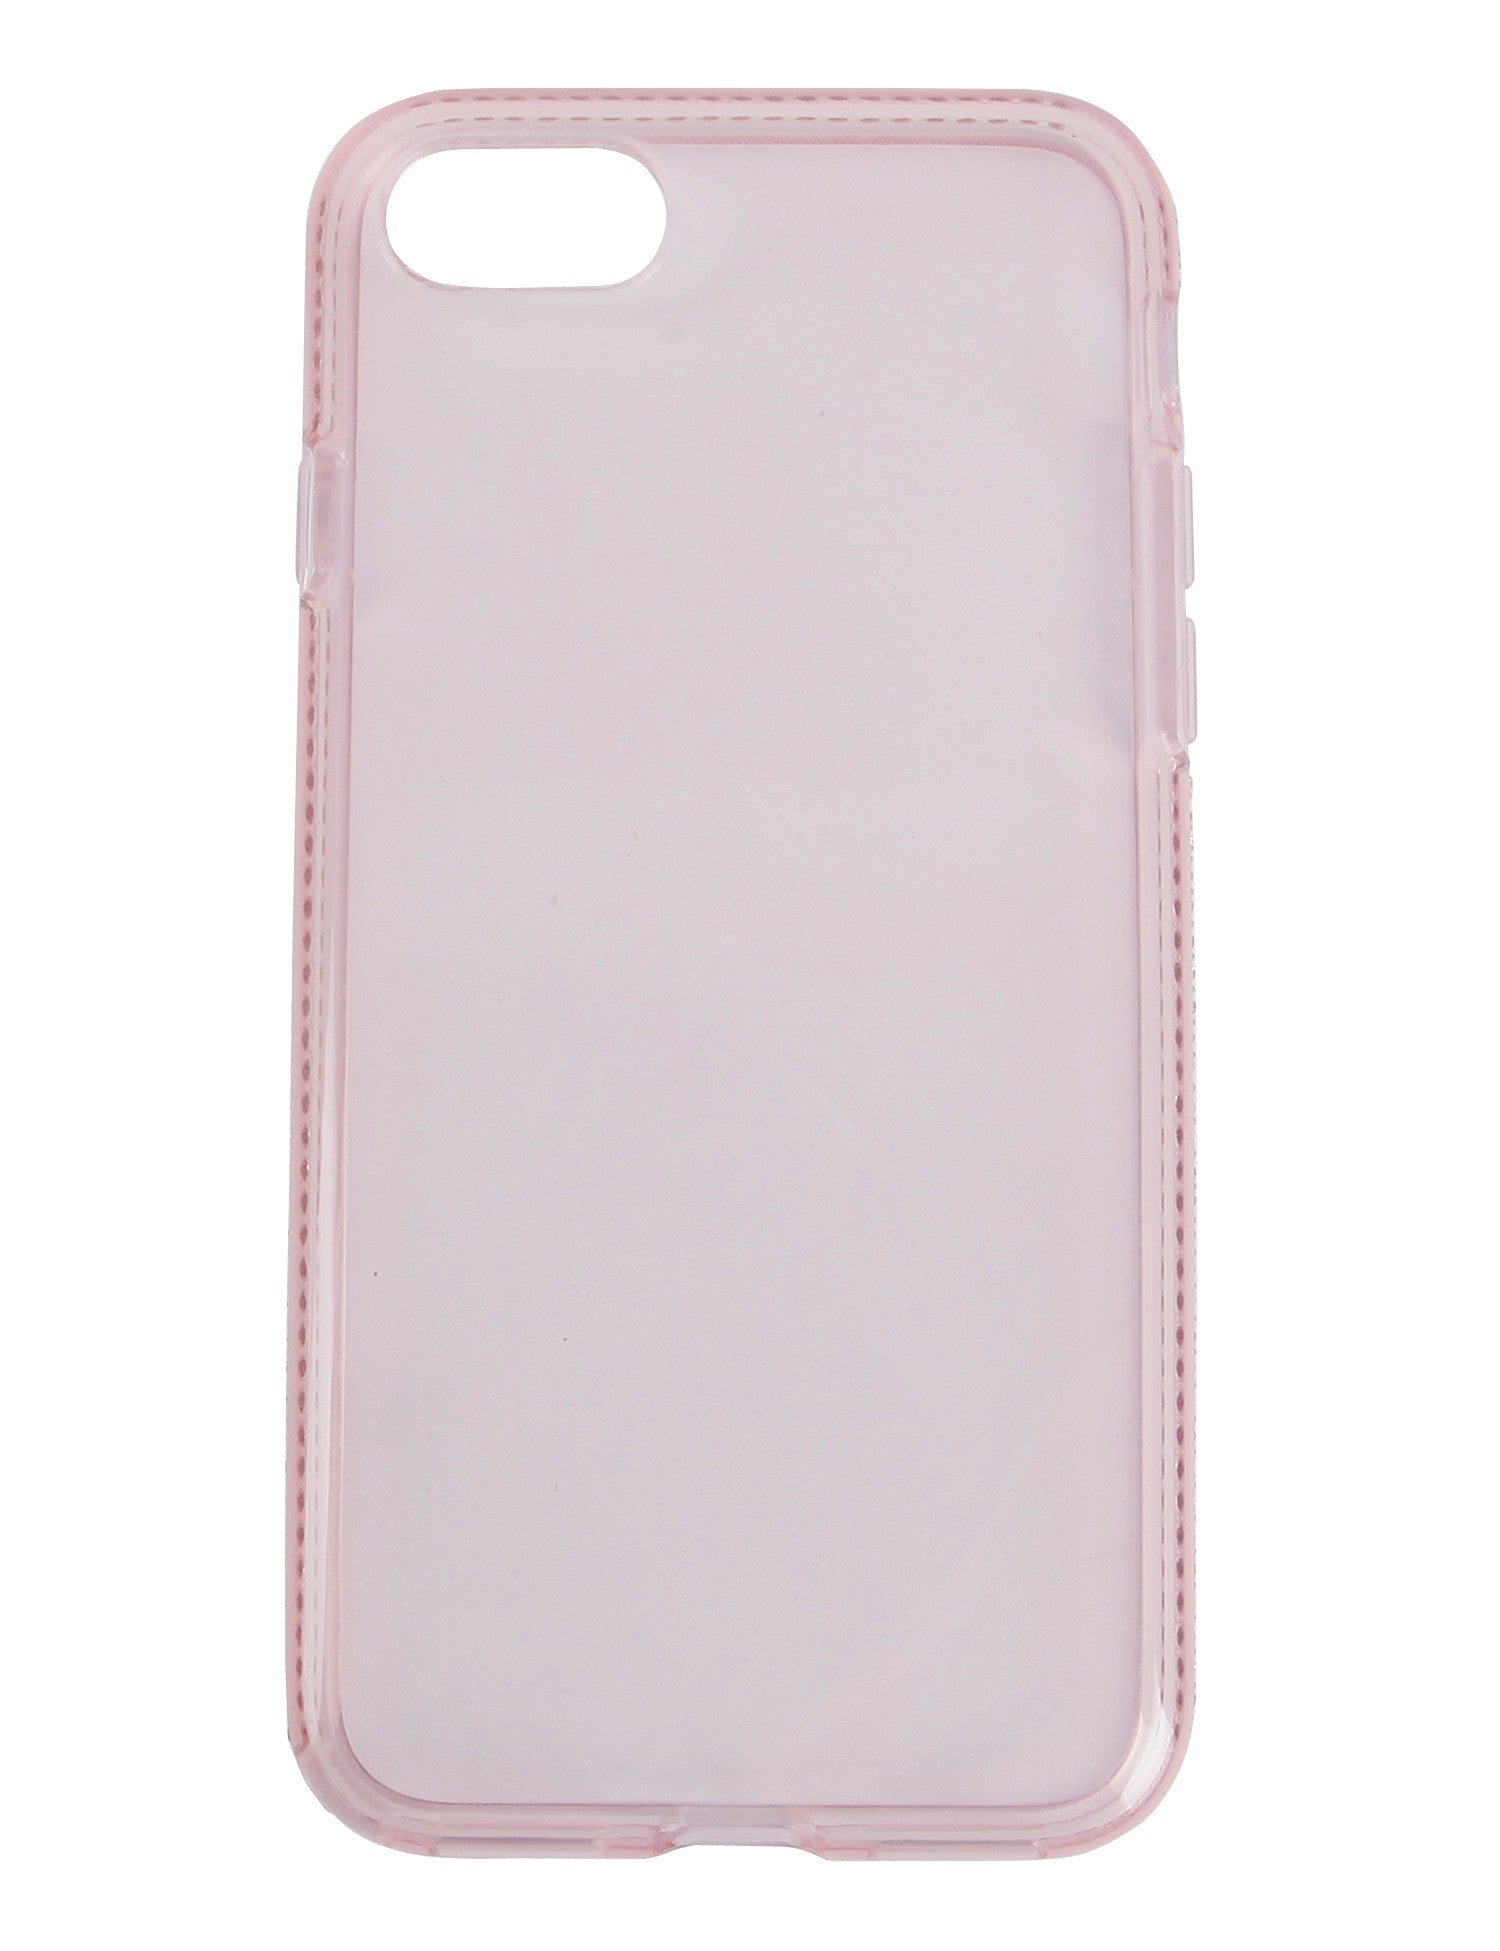 Image of Fashion Case Rhinestone for iPhone 7 Pink